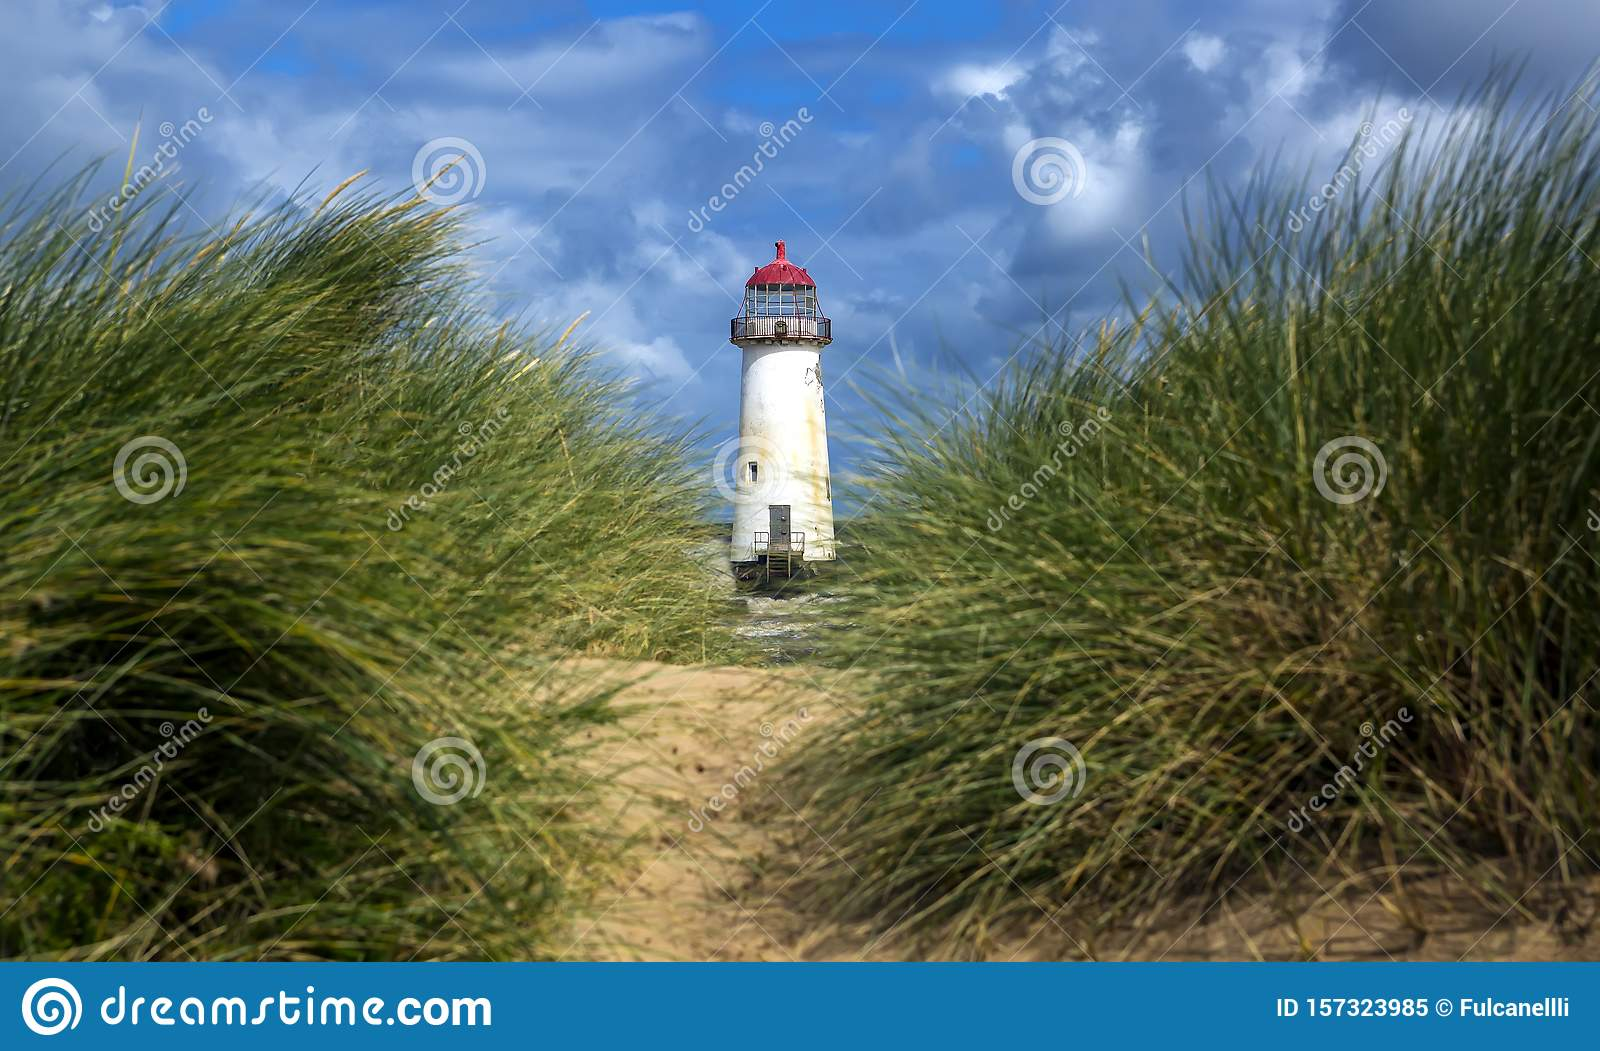 The Point of Ayr Lighthouse, also known as the Talacre Lighthouse, is a grade II listed building situated on the north coast of